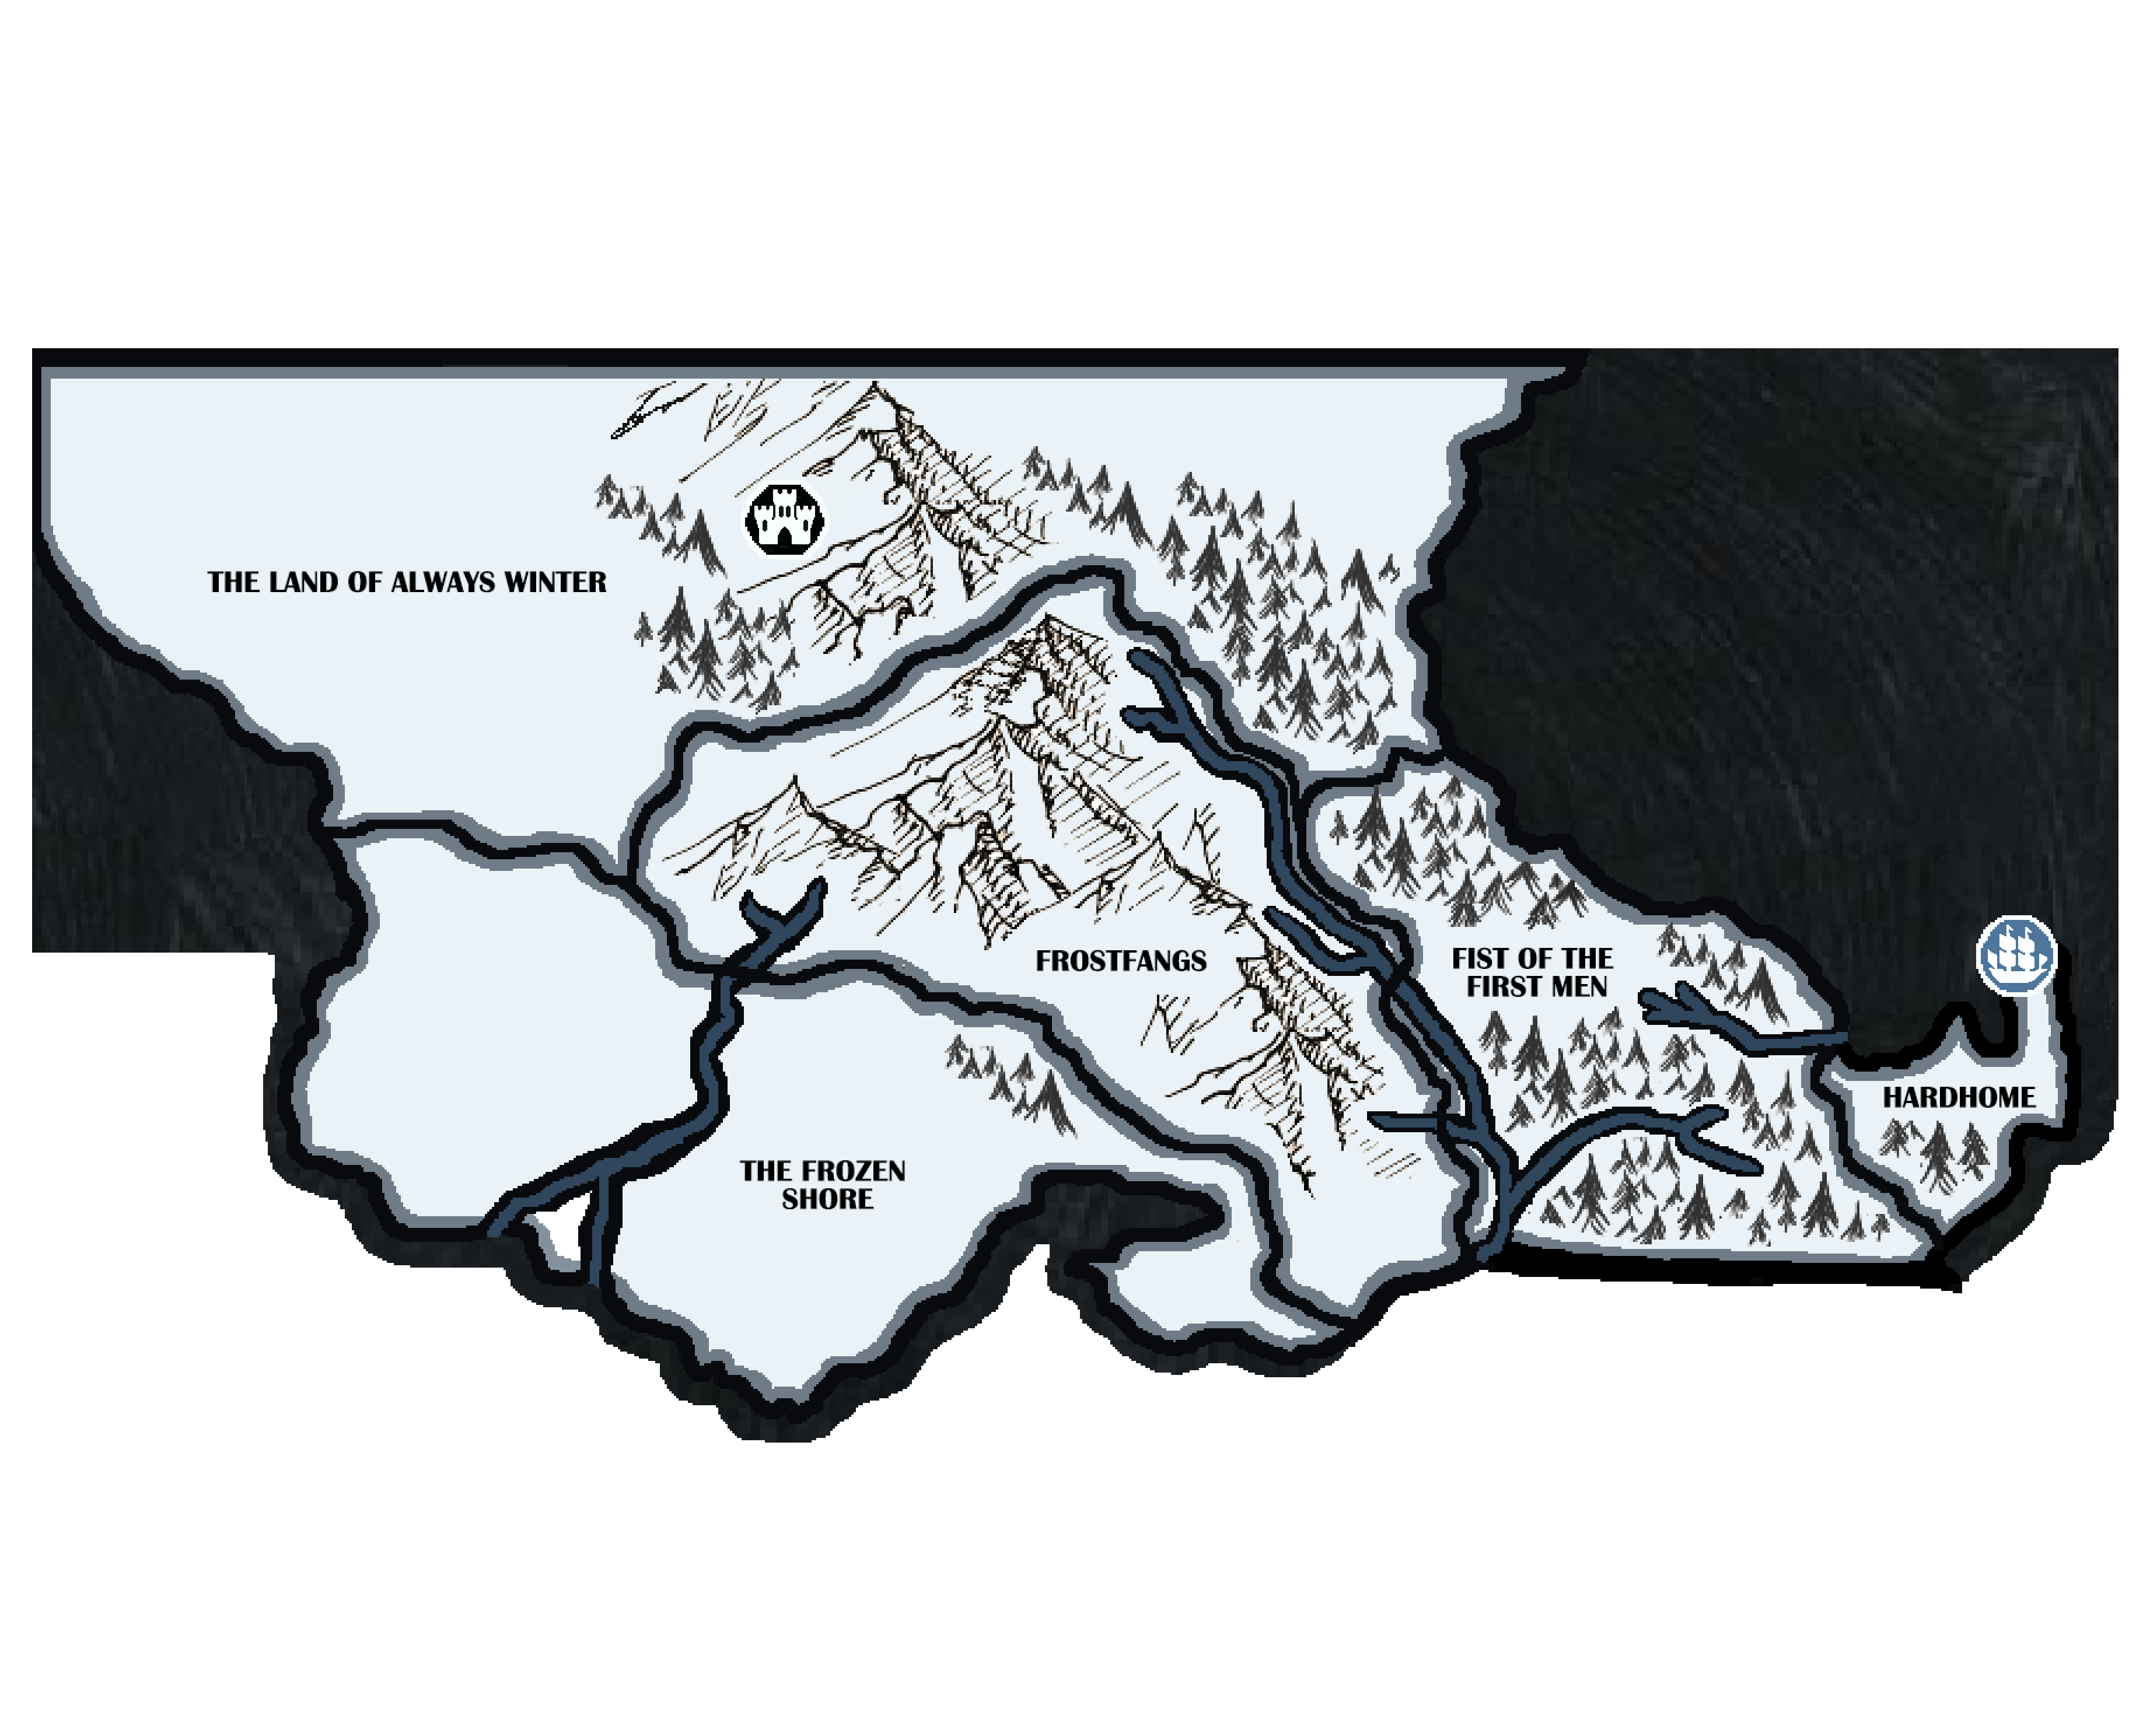 Risk: Game of Thrones - The White Walker Expansion by cjbarron on game of thrones castles art, game of thrones chart, game of thrones castle black wall, game of thrones wall art, map of land beyond the wall, westeros map beyond the wall, elevator game of thrones the wall, game of thrones cheat sheet, game of thrones scenery,